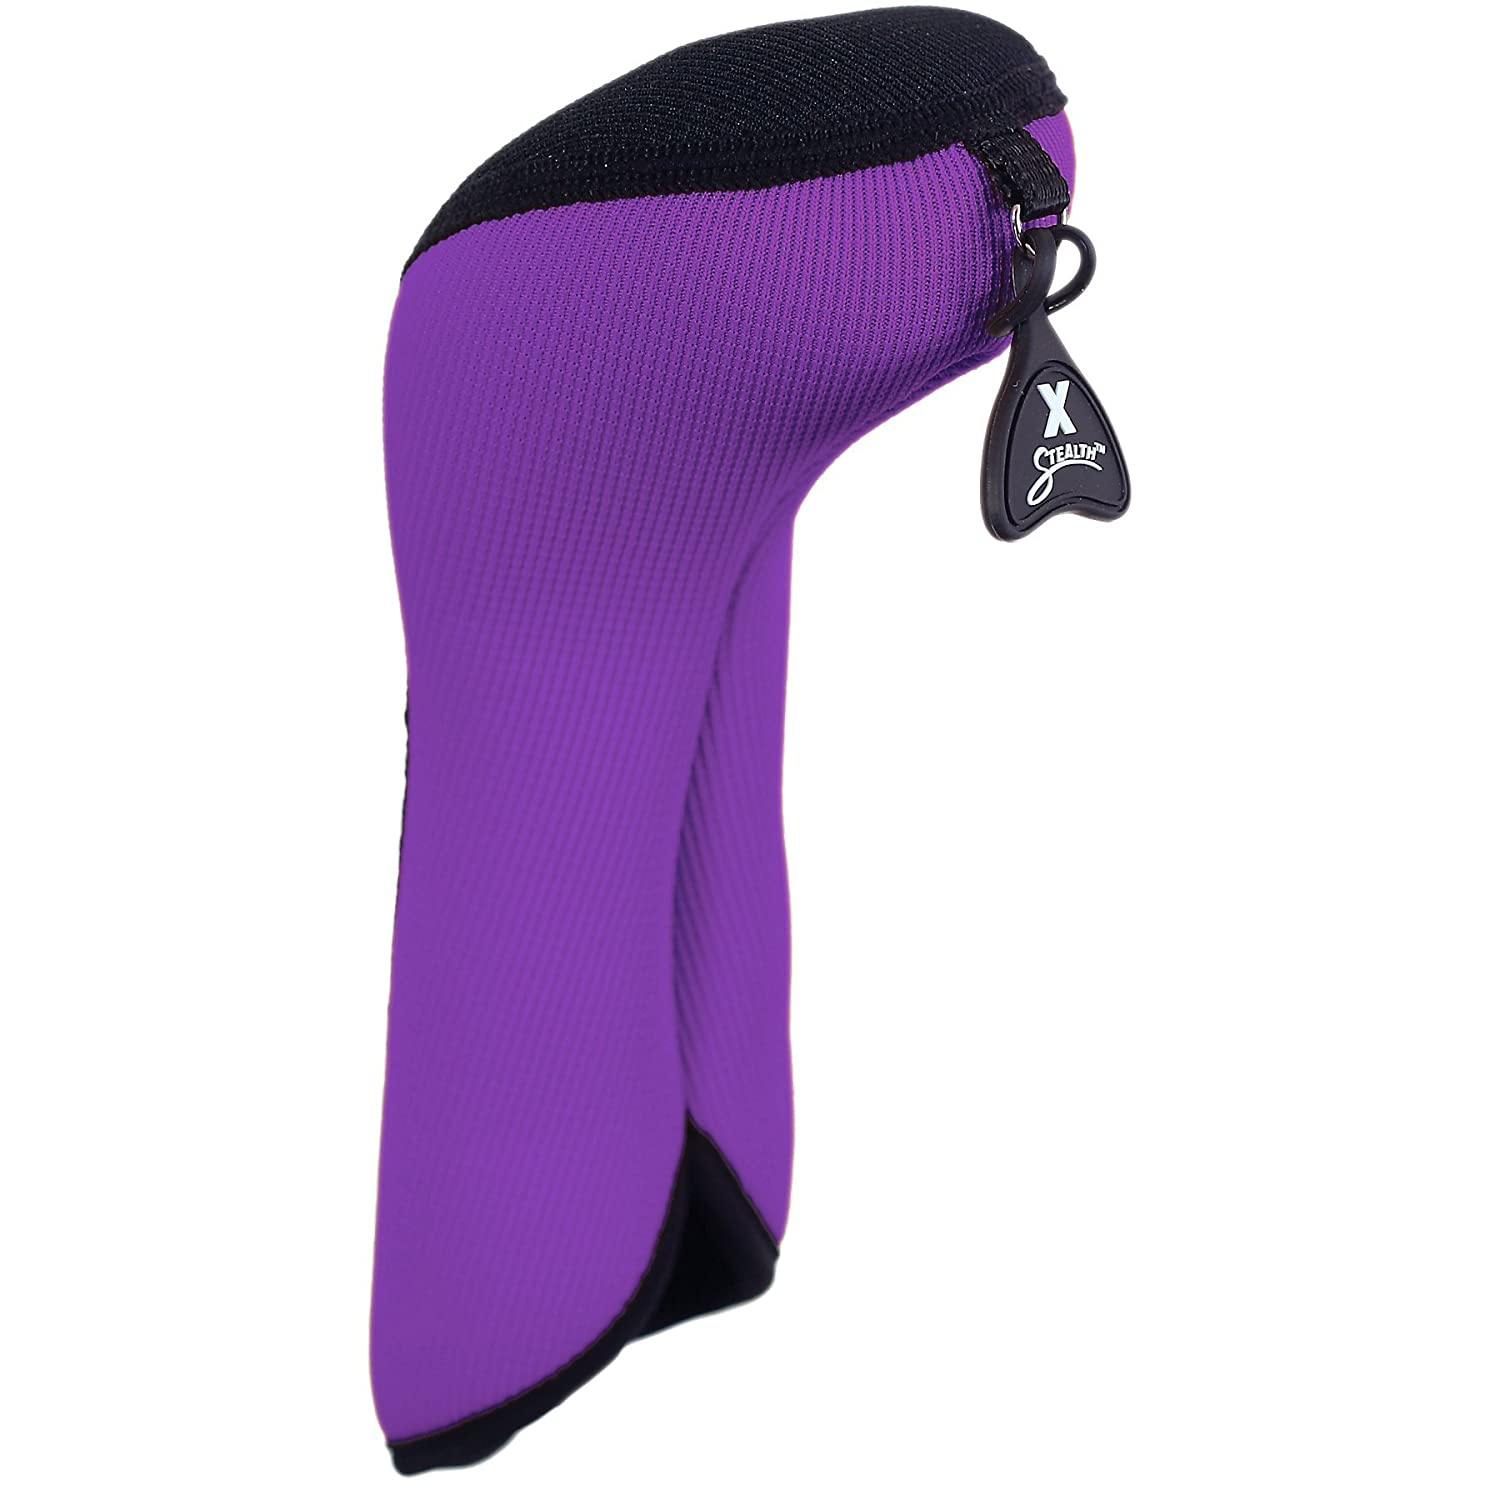 (Purple) - Stealth Women's 7-9-X Fairway ID Tags Club Cover - 8 Colours Available   B0095ZKROU